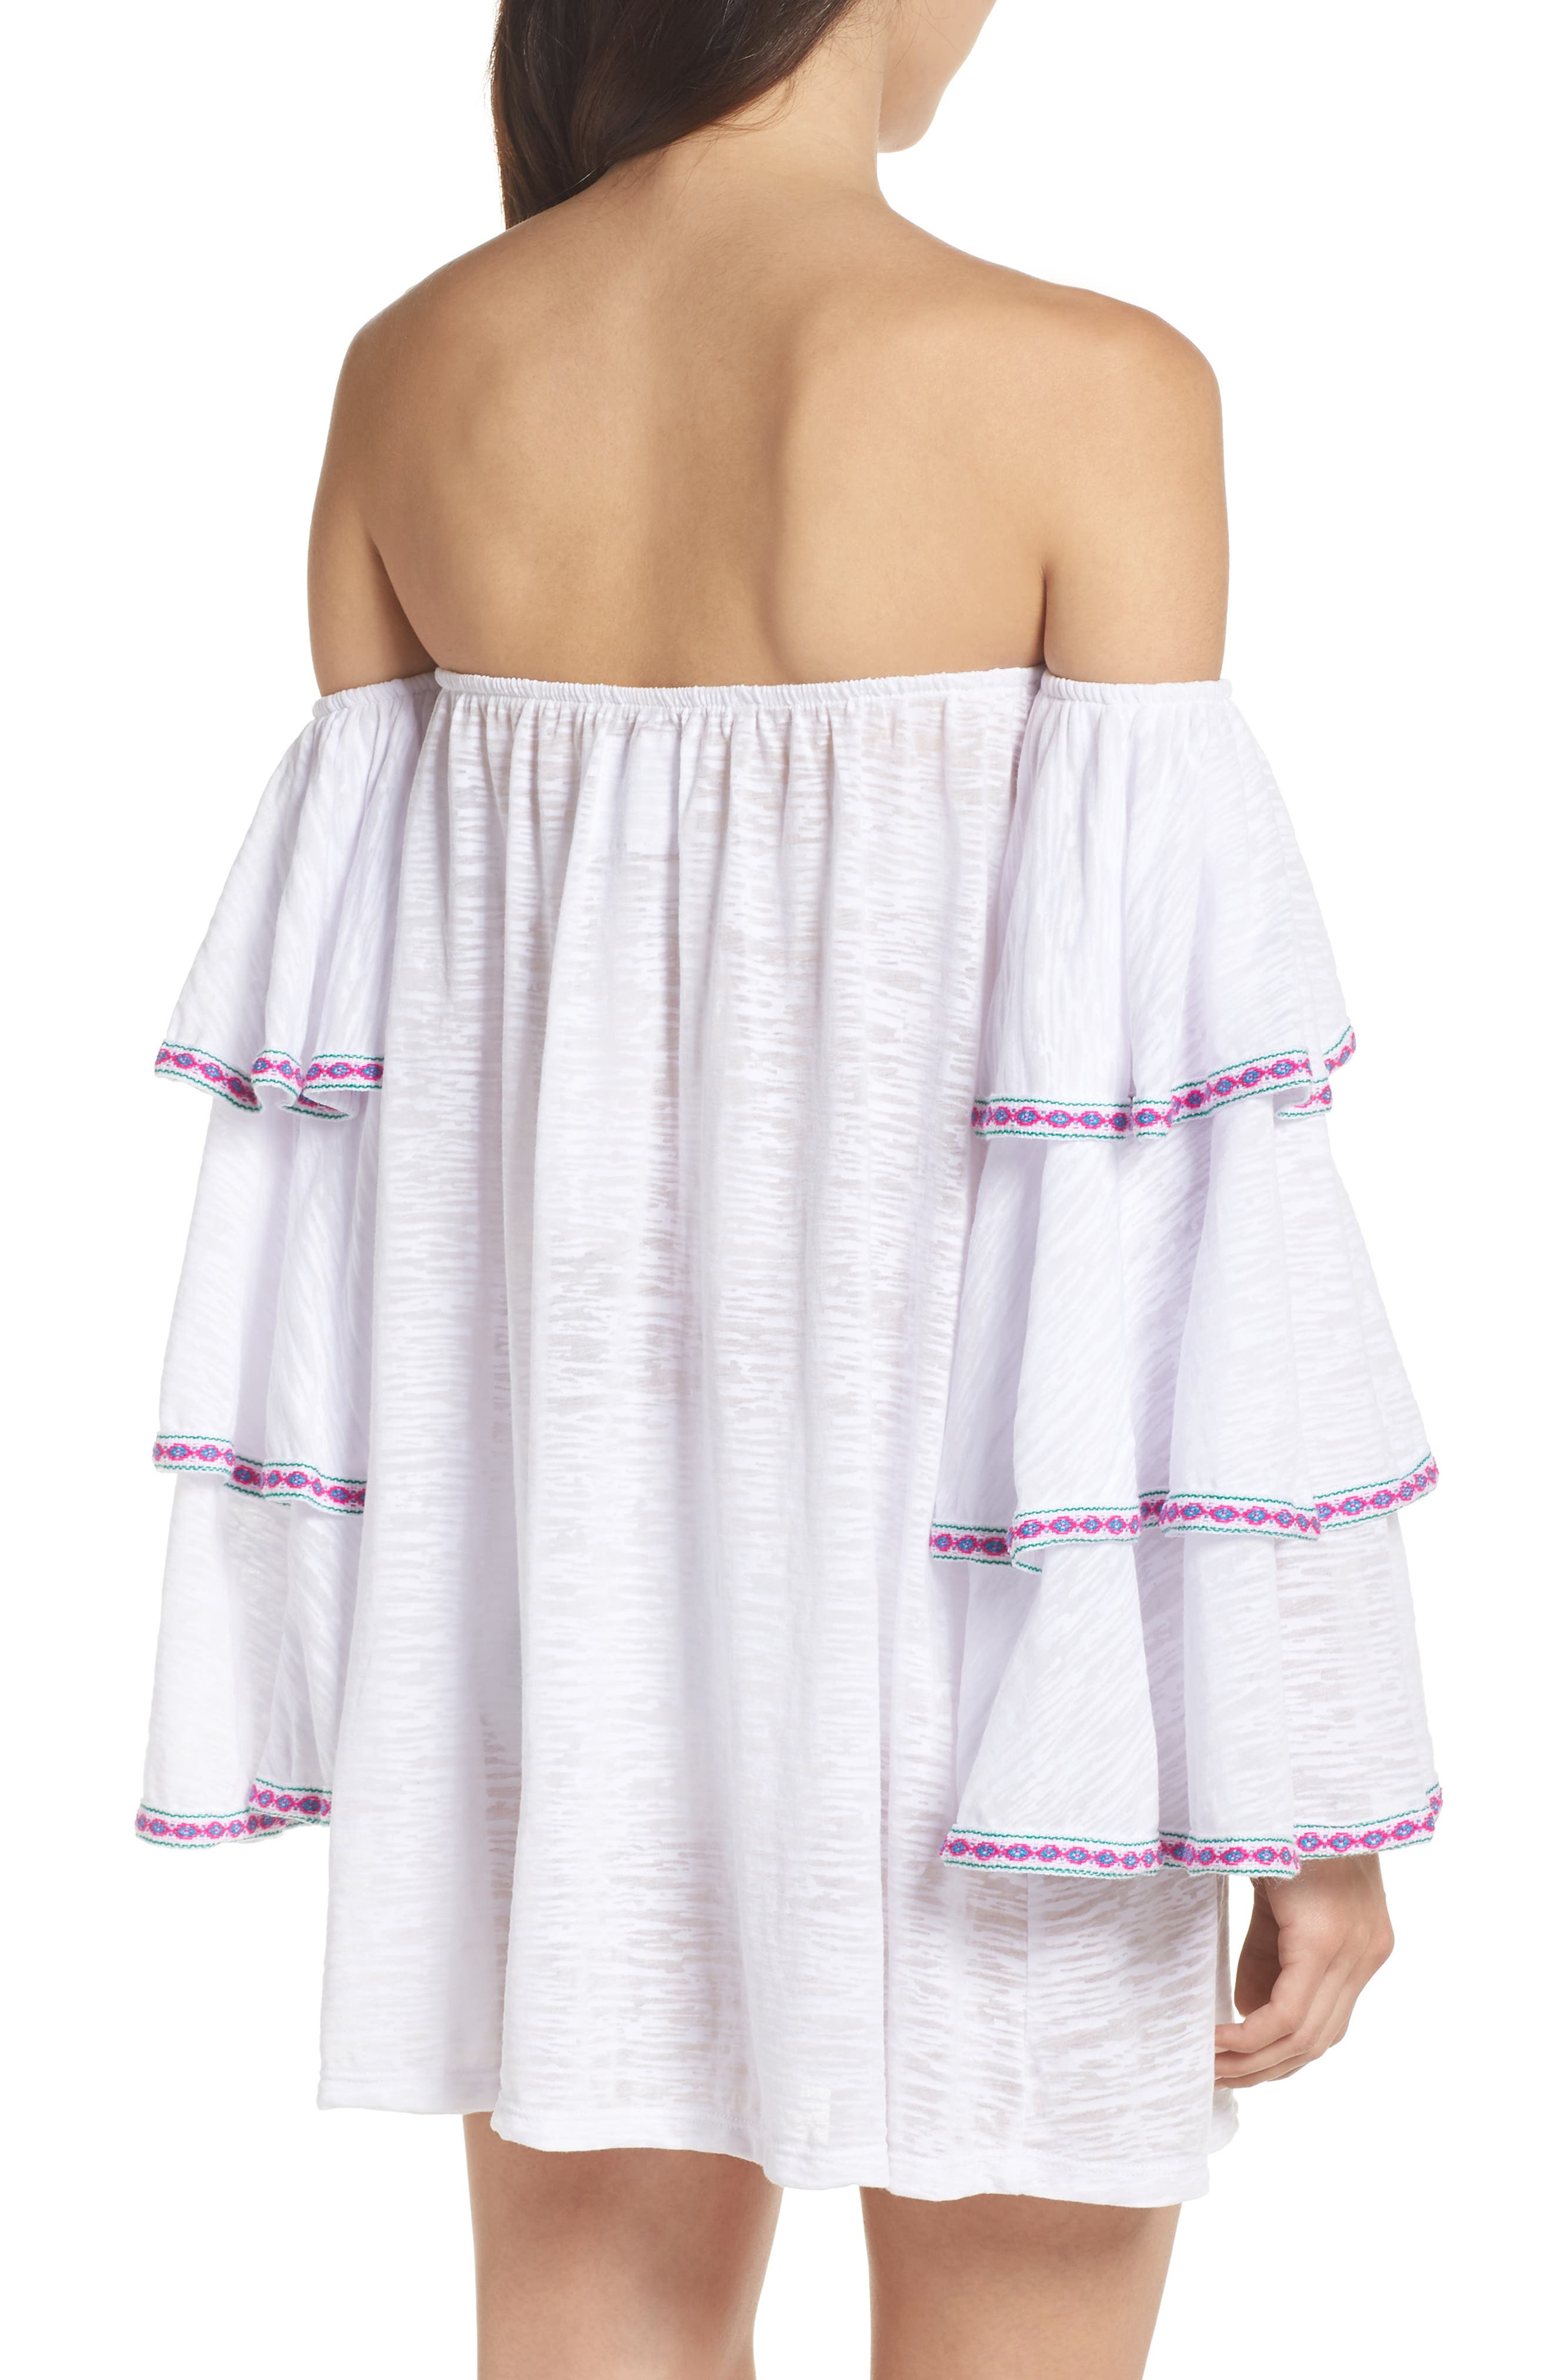 Off the Shoulder Cover-Up Dress,                             Alternate thumbnail 2, color,                             White